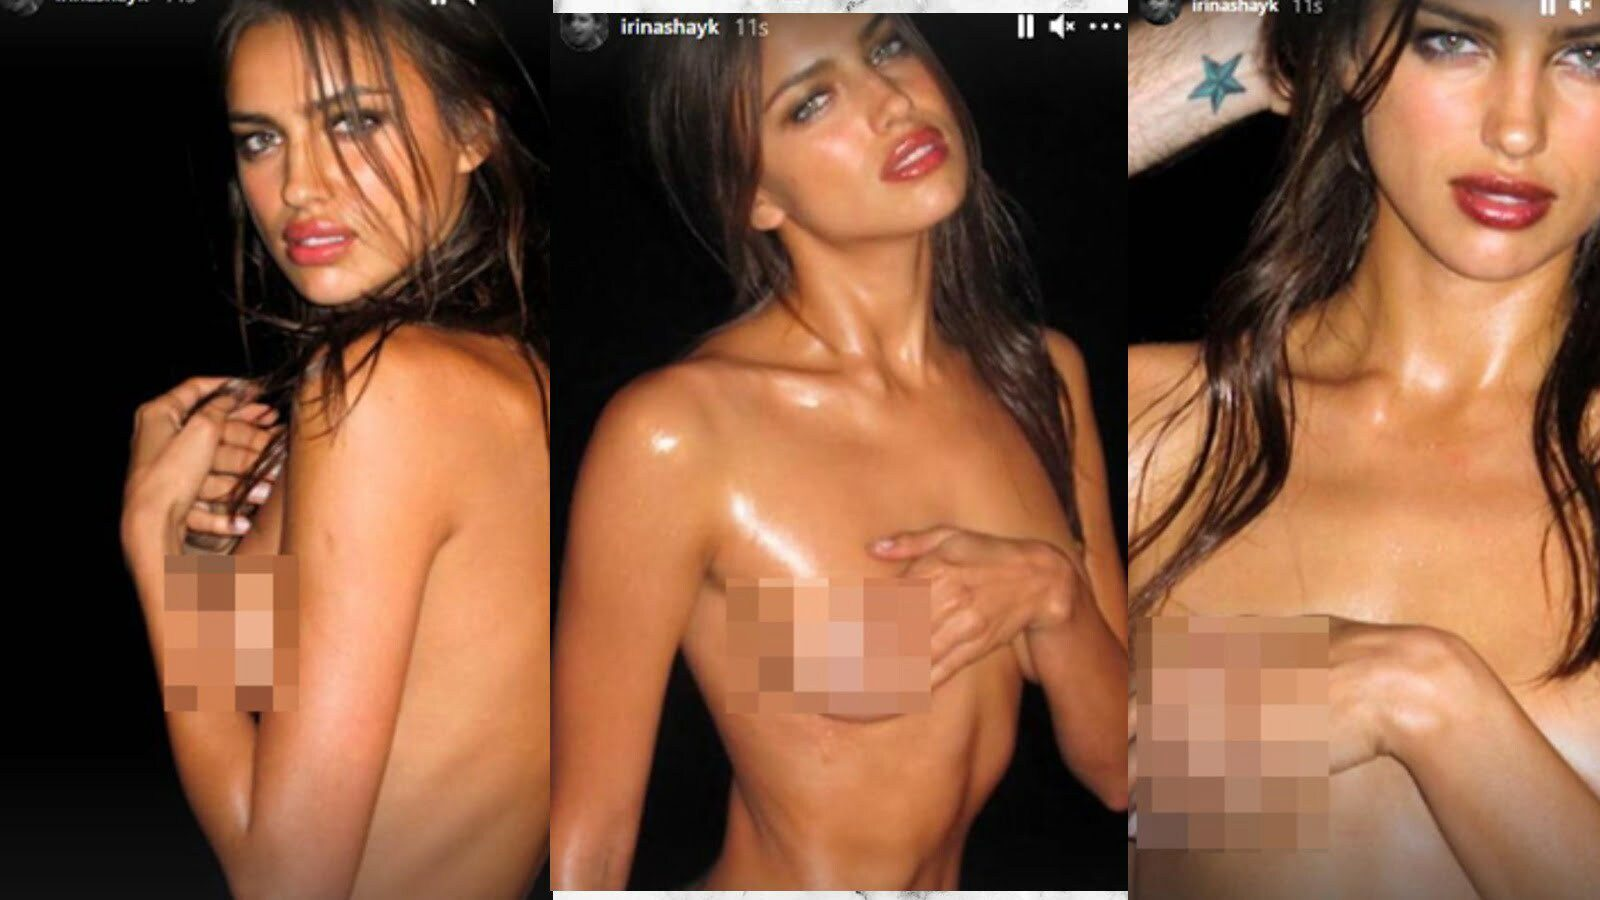 Model Irina Shayk Reveals A Charming Beauty With Her Nude Shares 2